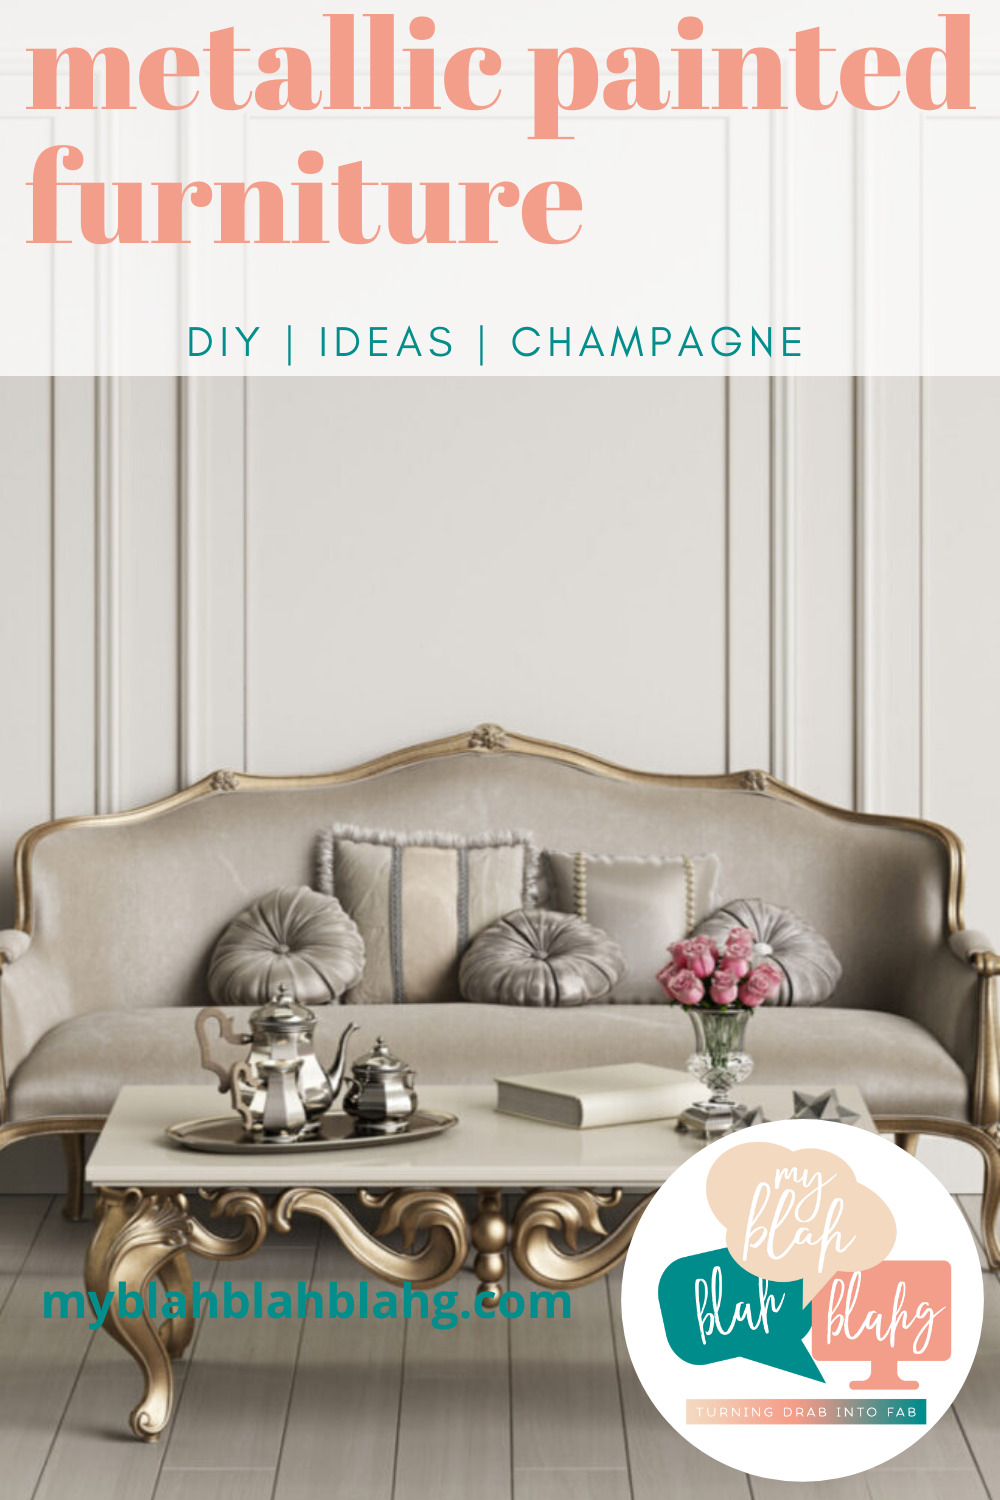 Ready to update your space? Then you should try adding some metallic accents! Check out our DIY tutorial. #MyBlahBlahBlahg #DIYMetallicPaintedFurniture #MetallicFurnitureRefinish #MetallicPaintedFurnitureIdeas